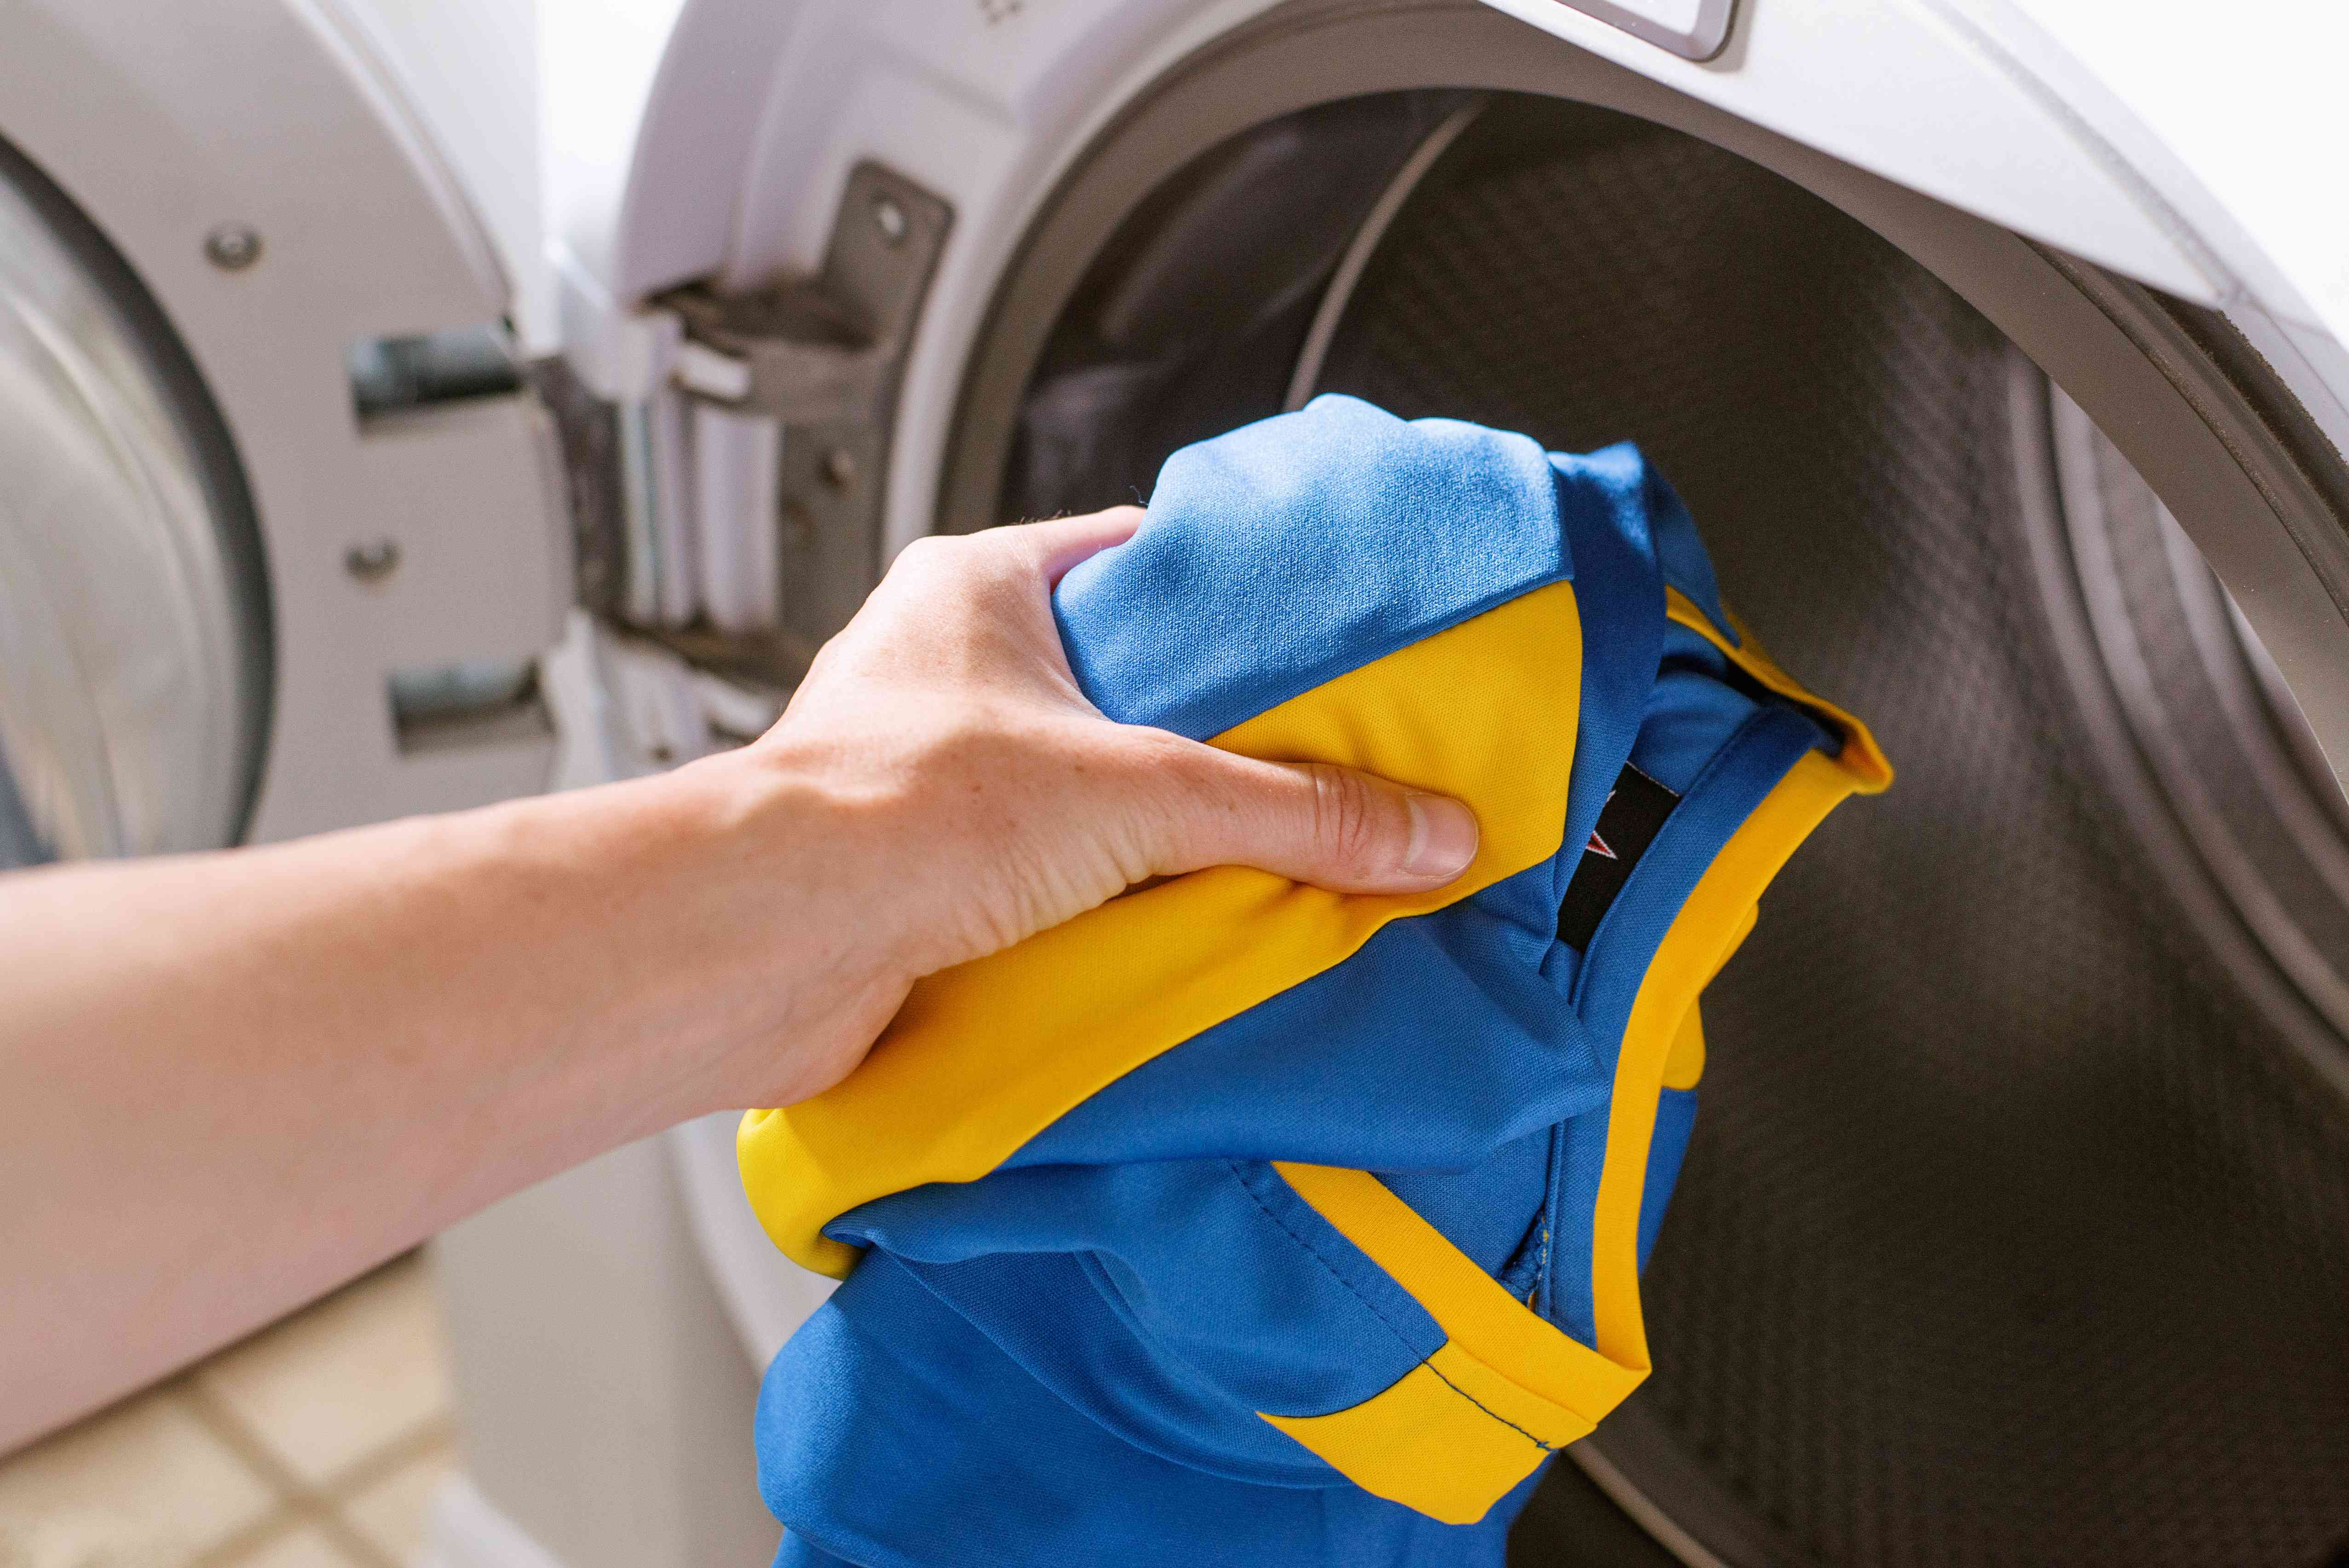 Blue and yellow soccer uniform placed in washing machine alone